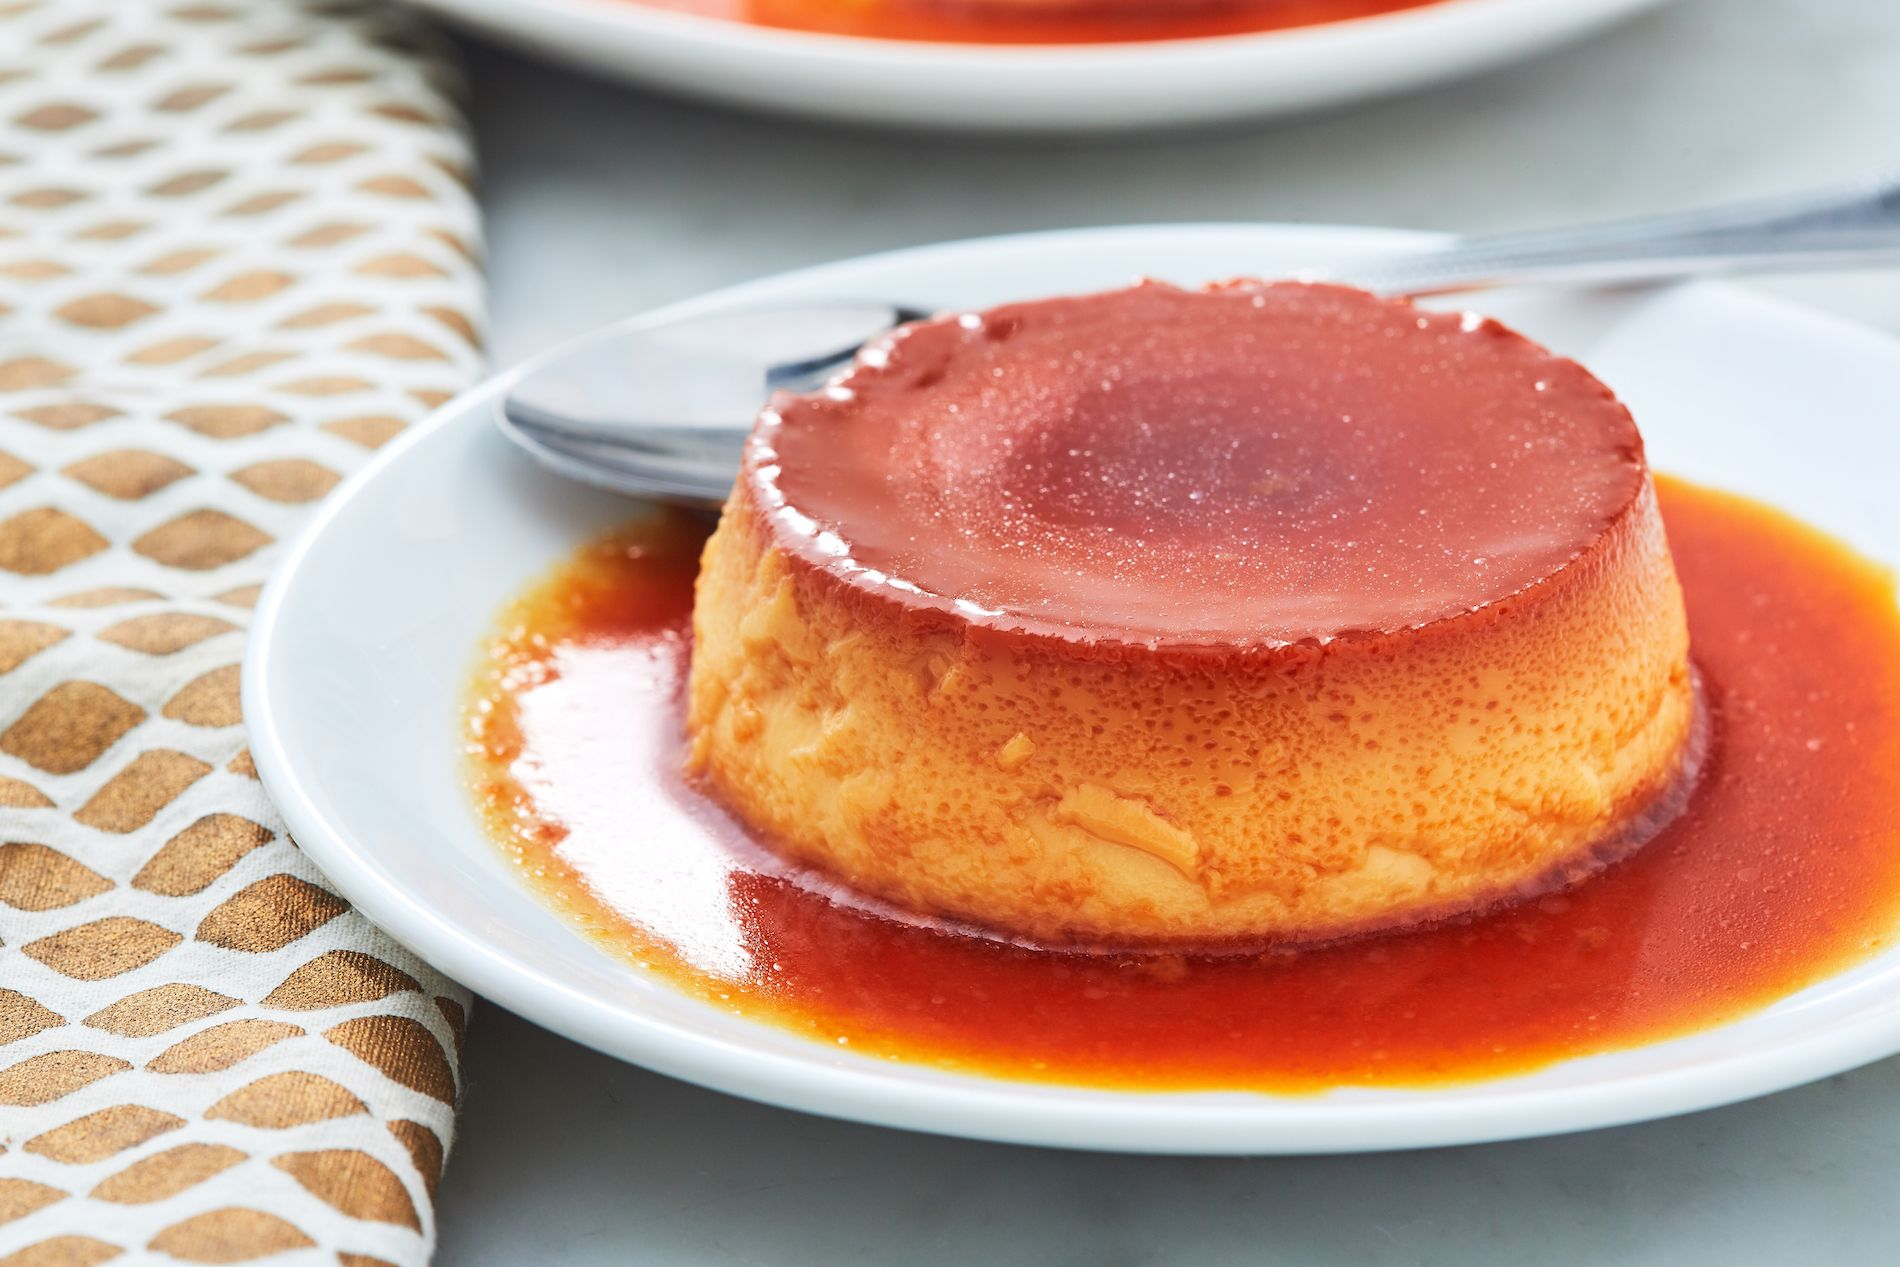 15 Spanish Dessert Recipes That Should Be On Your Go-To Baking List